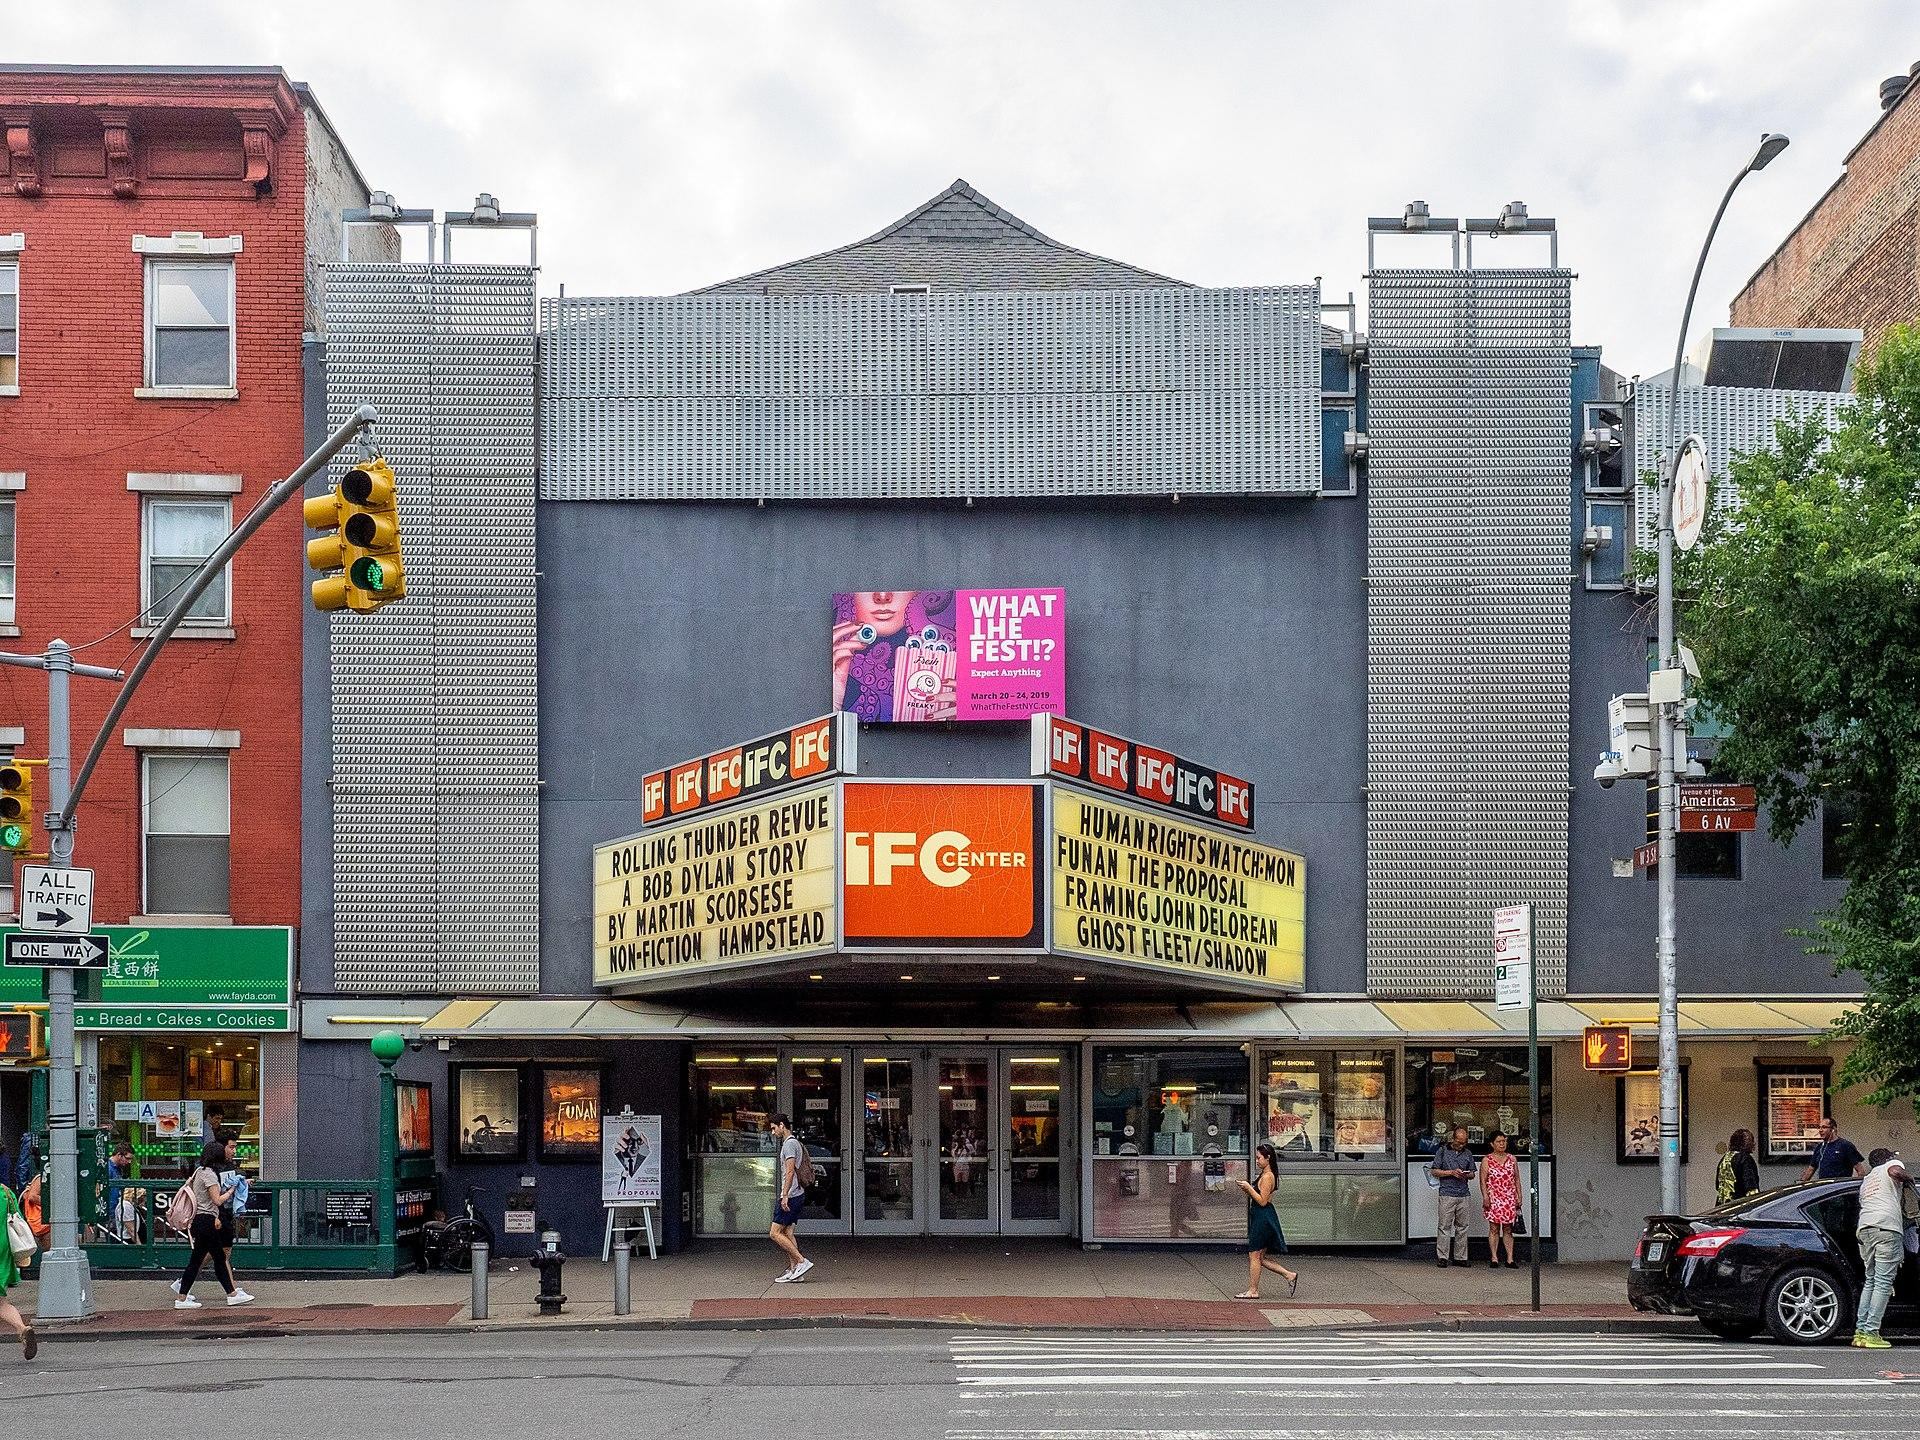 New York City Orders Closure of All Movie Theaters Amid Coronavirus Outbreak - Yahoo Entertainment